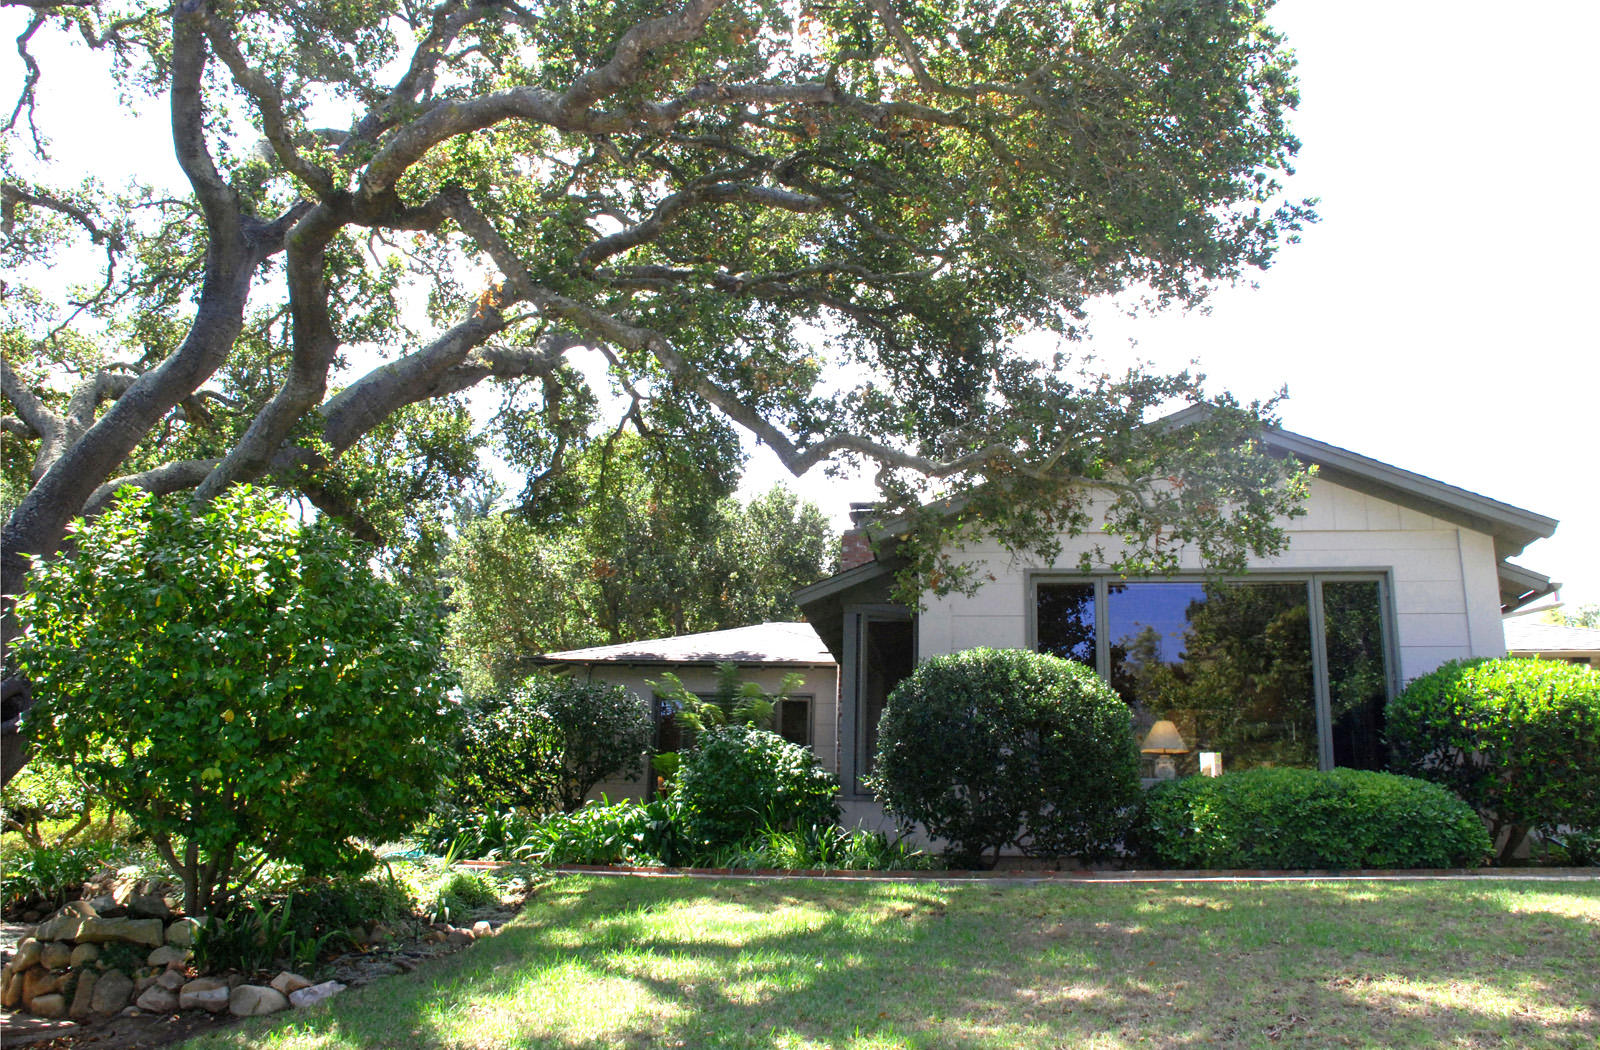 Property photo for 1615 Hillcrest Road Santa Barbara, California 93103 - 13-2229